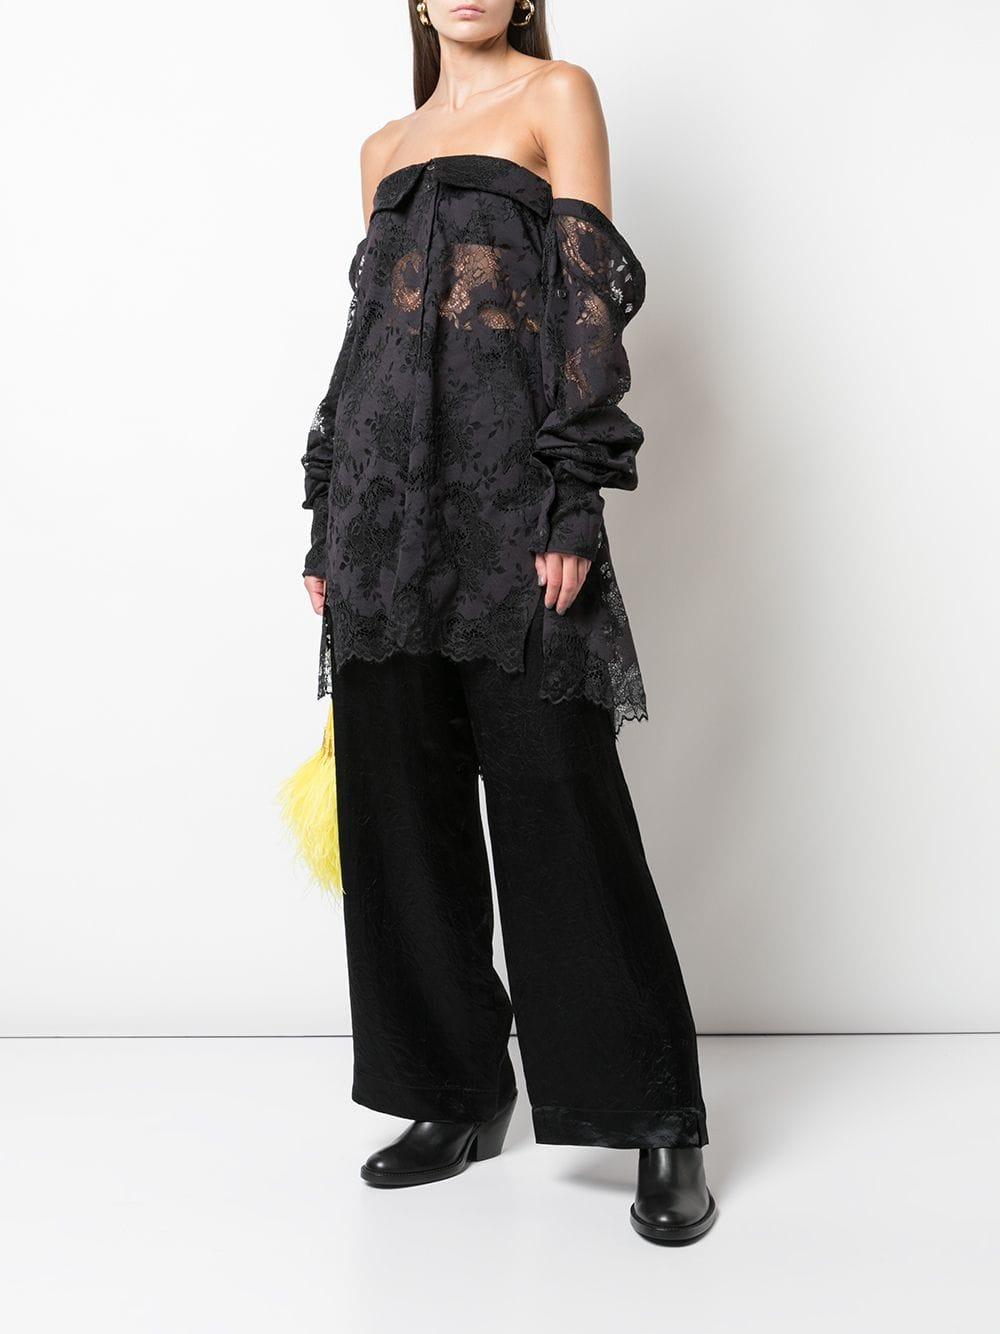 ANN DEMEULEMEESTER WOMEN OFF SHOULDER SHIRT